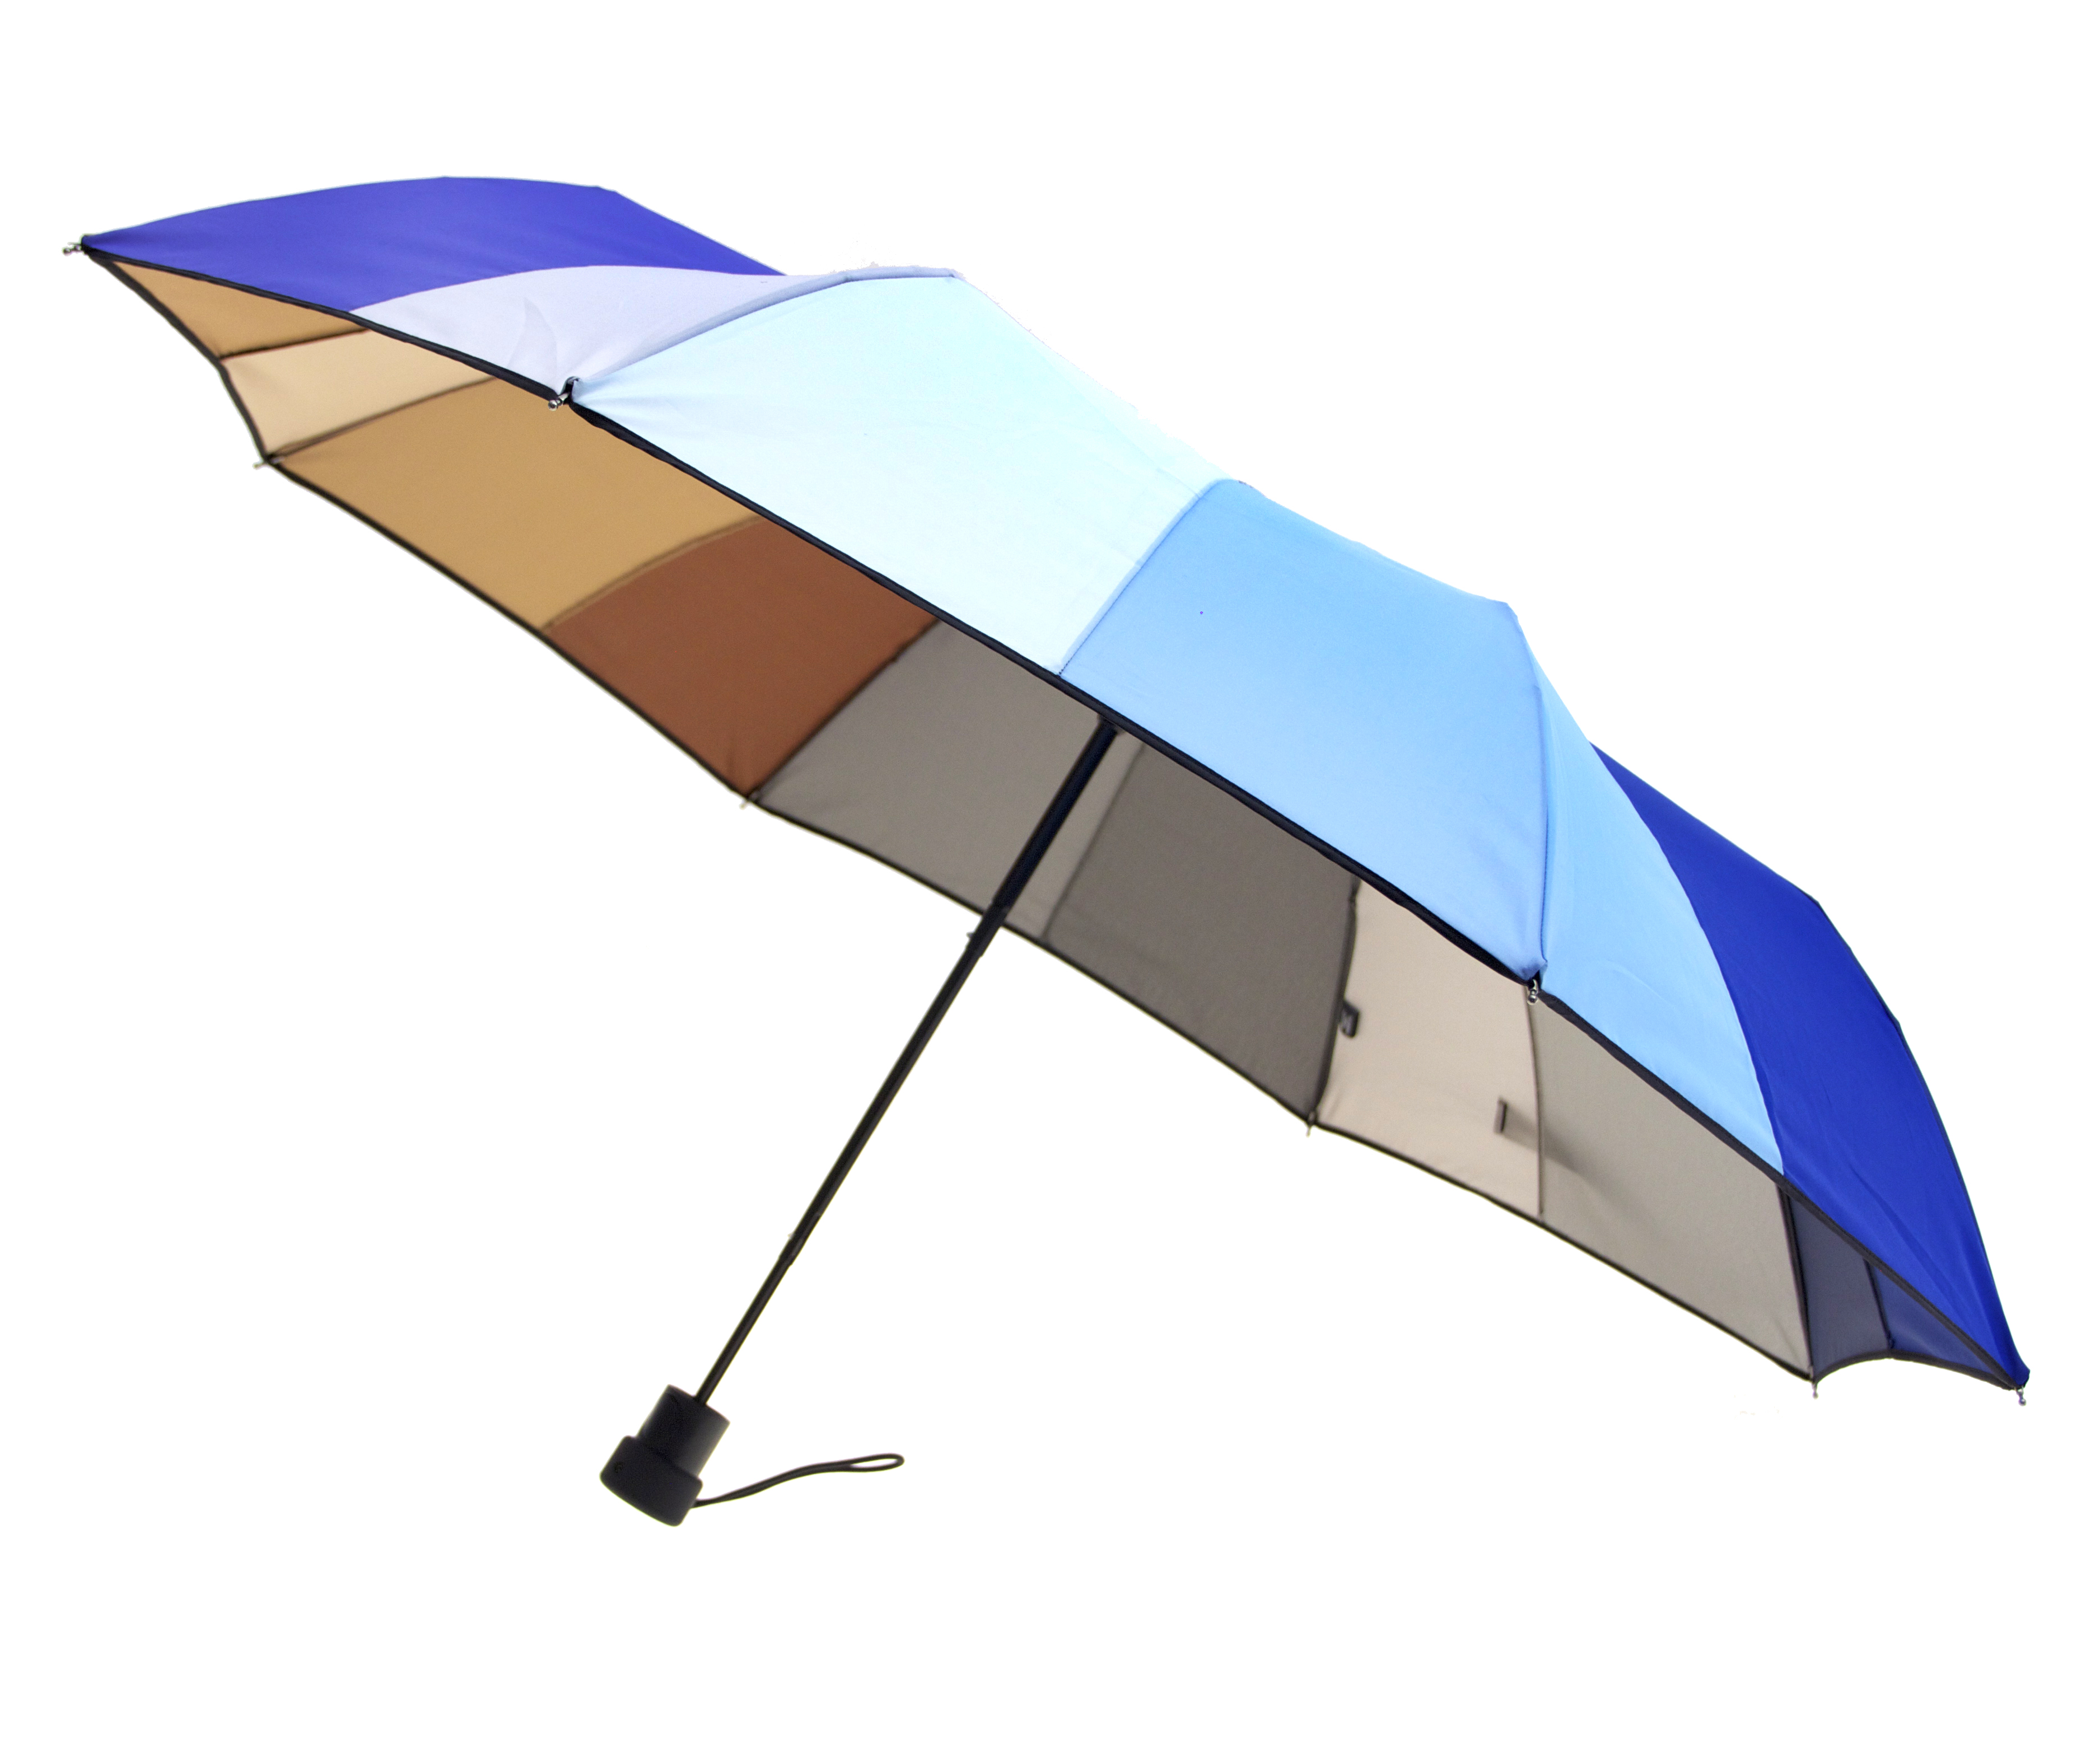 Cool rainbow umbrella